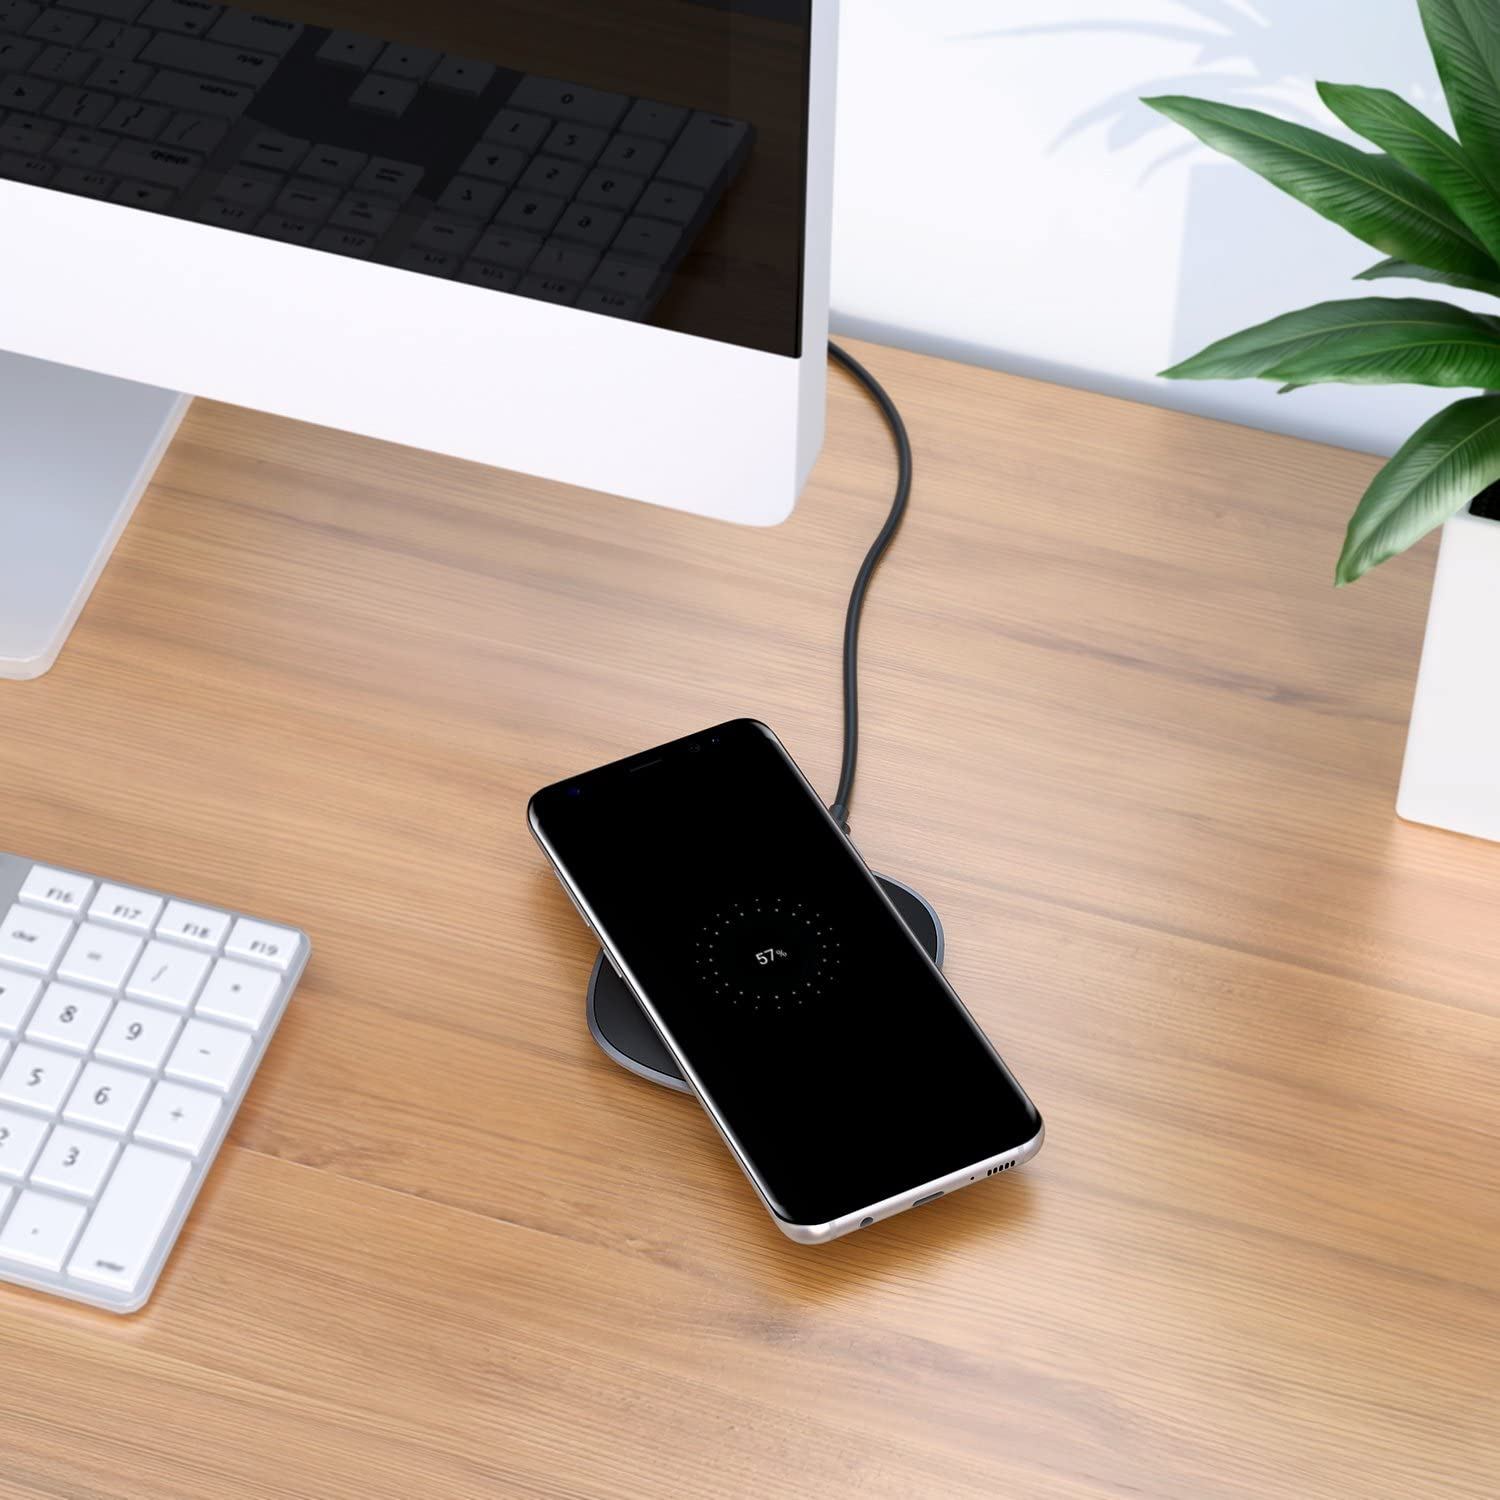 no Need to Remove Case AUKEY Wireless Charger 10W Qi Fast Charging with Micro USB and ABS Base Non-Metal Deliver Precise Power to Most Qi Enabled Smartphones